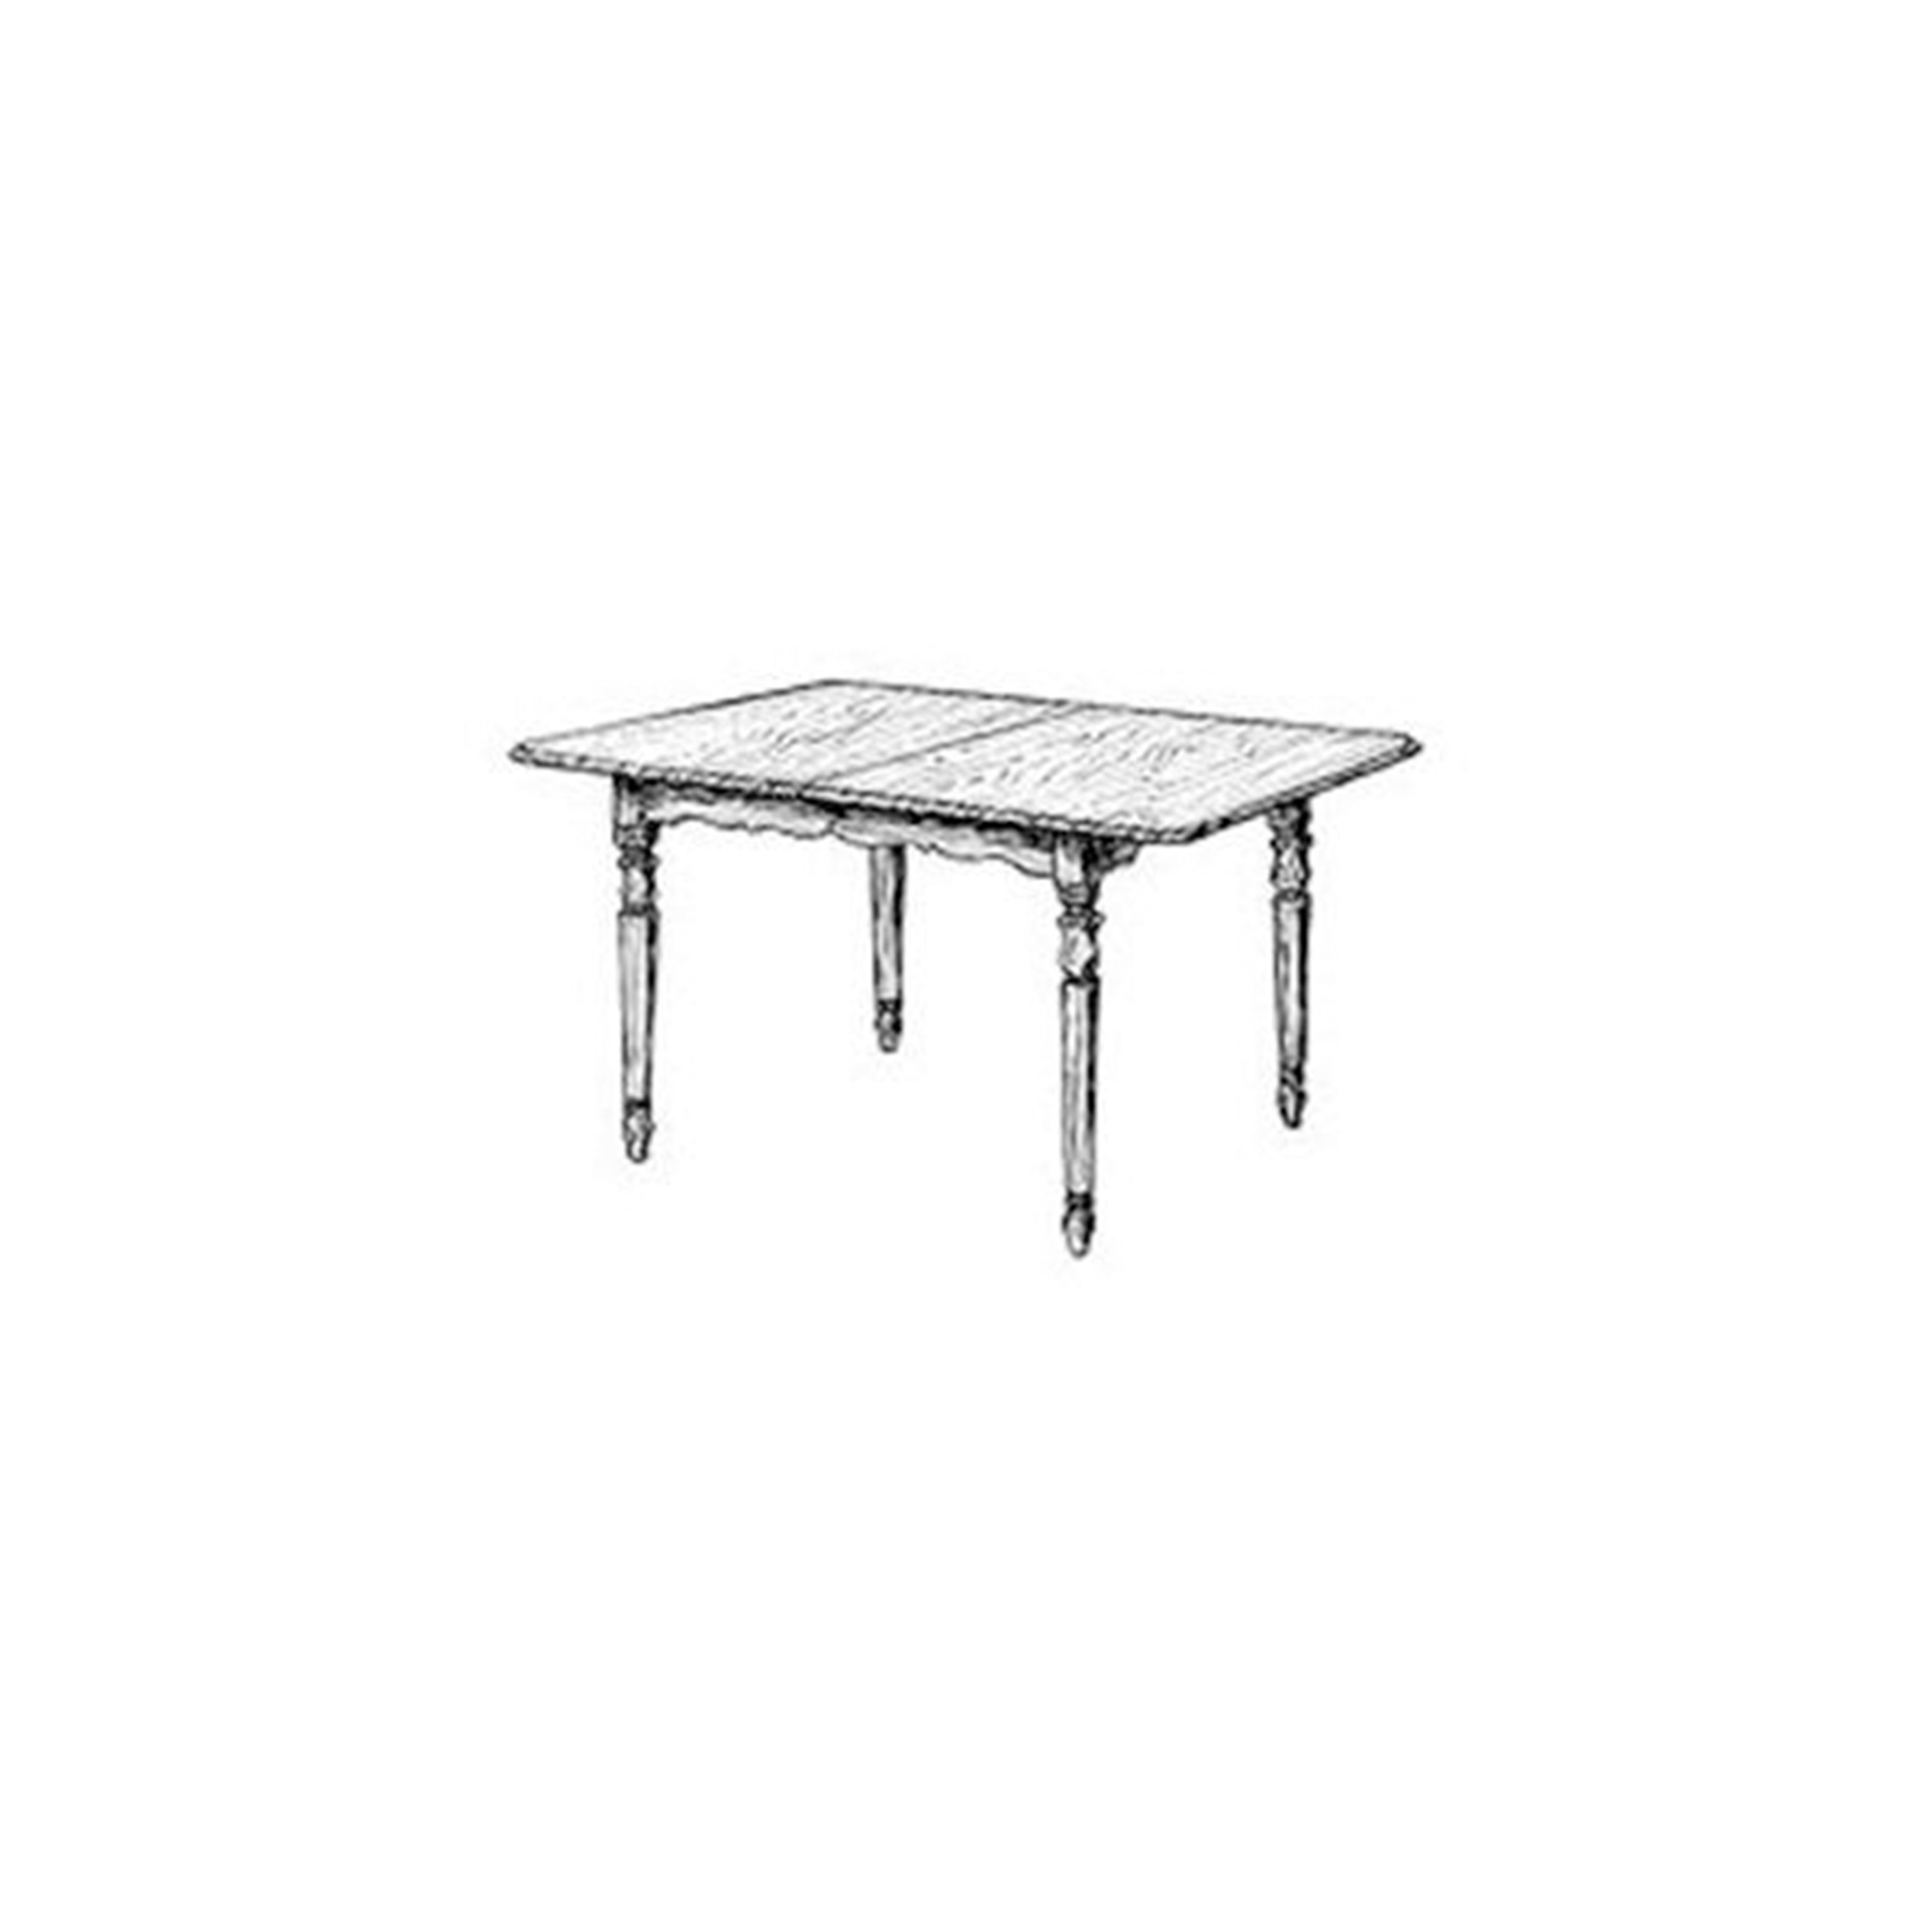 Woodworking Project Paper Plan to Build Extension Dining Table